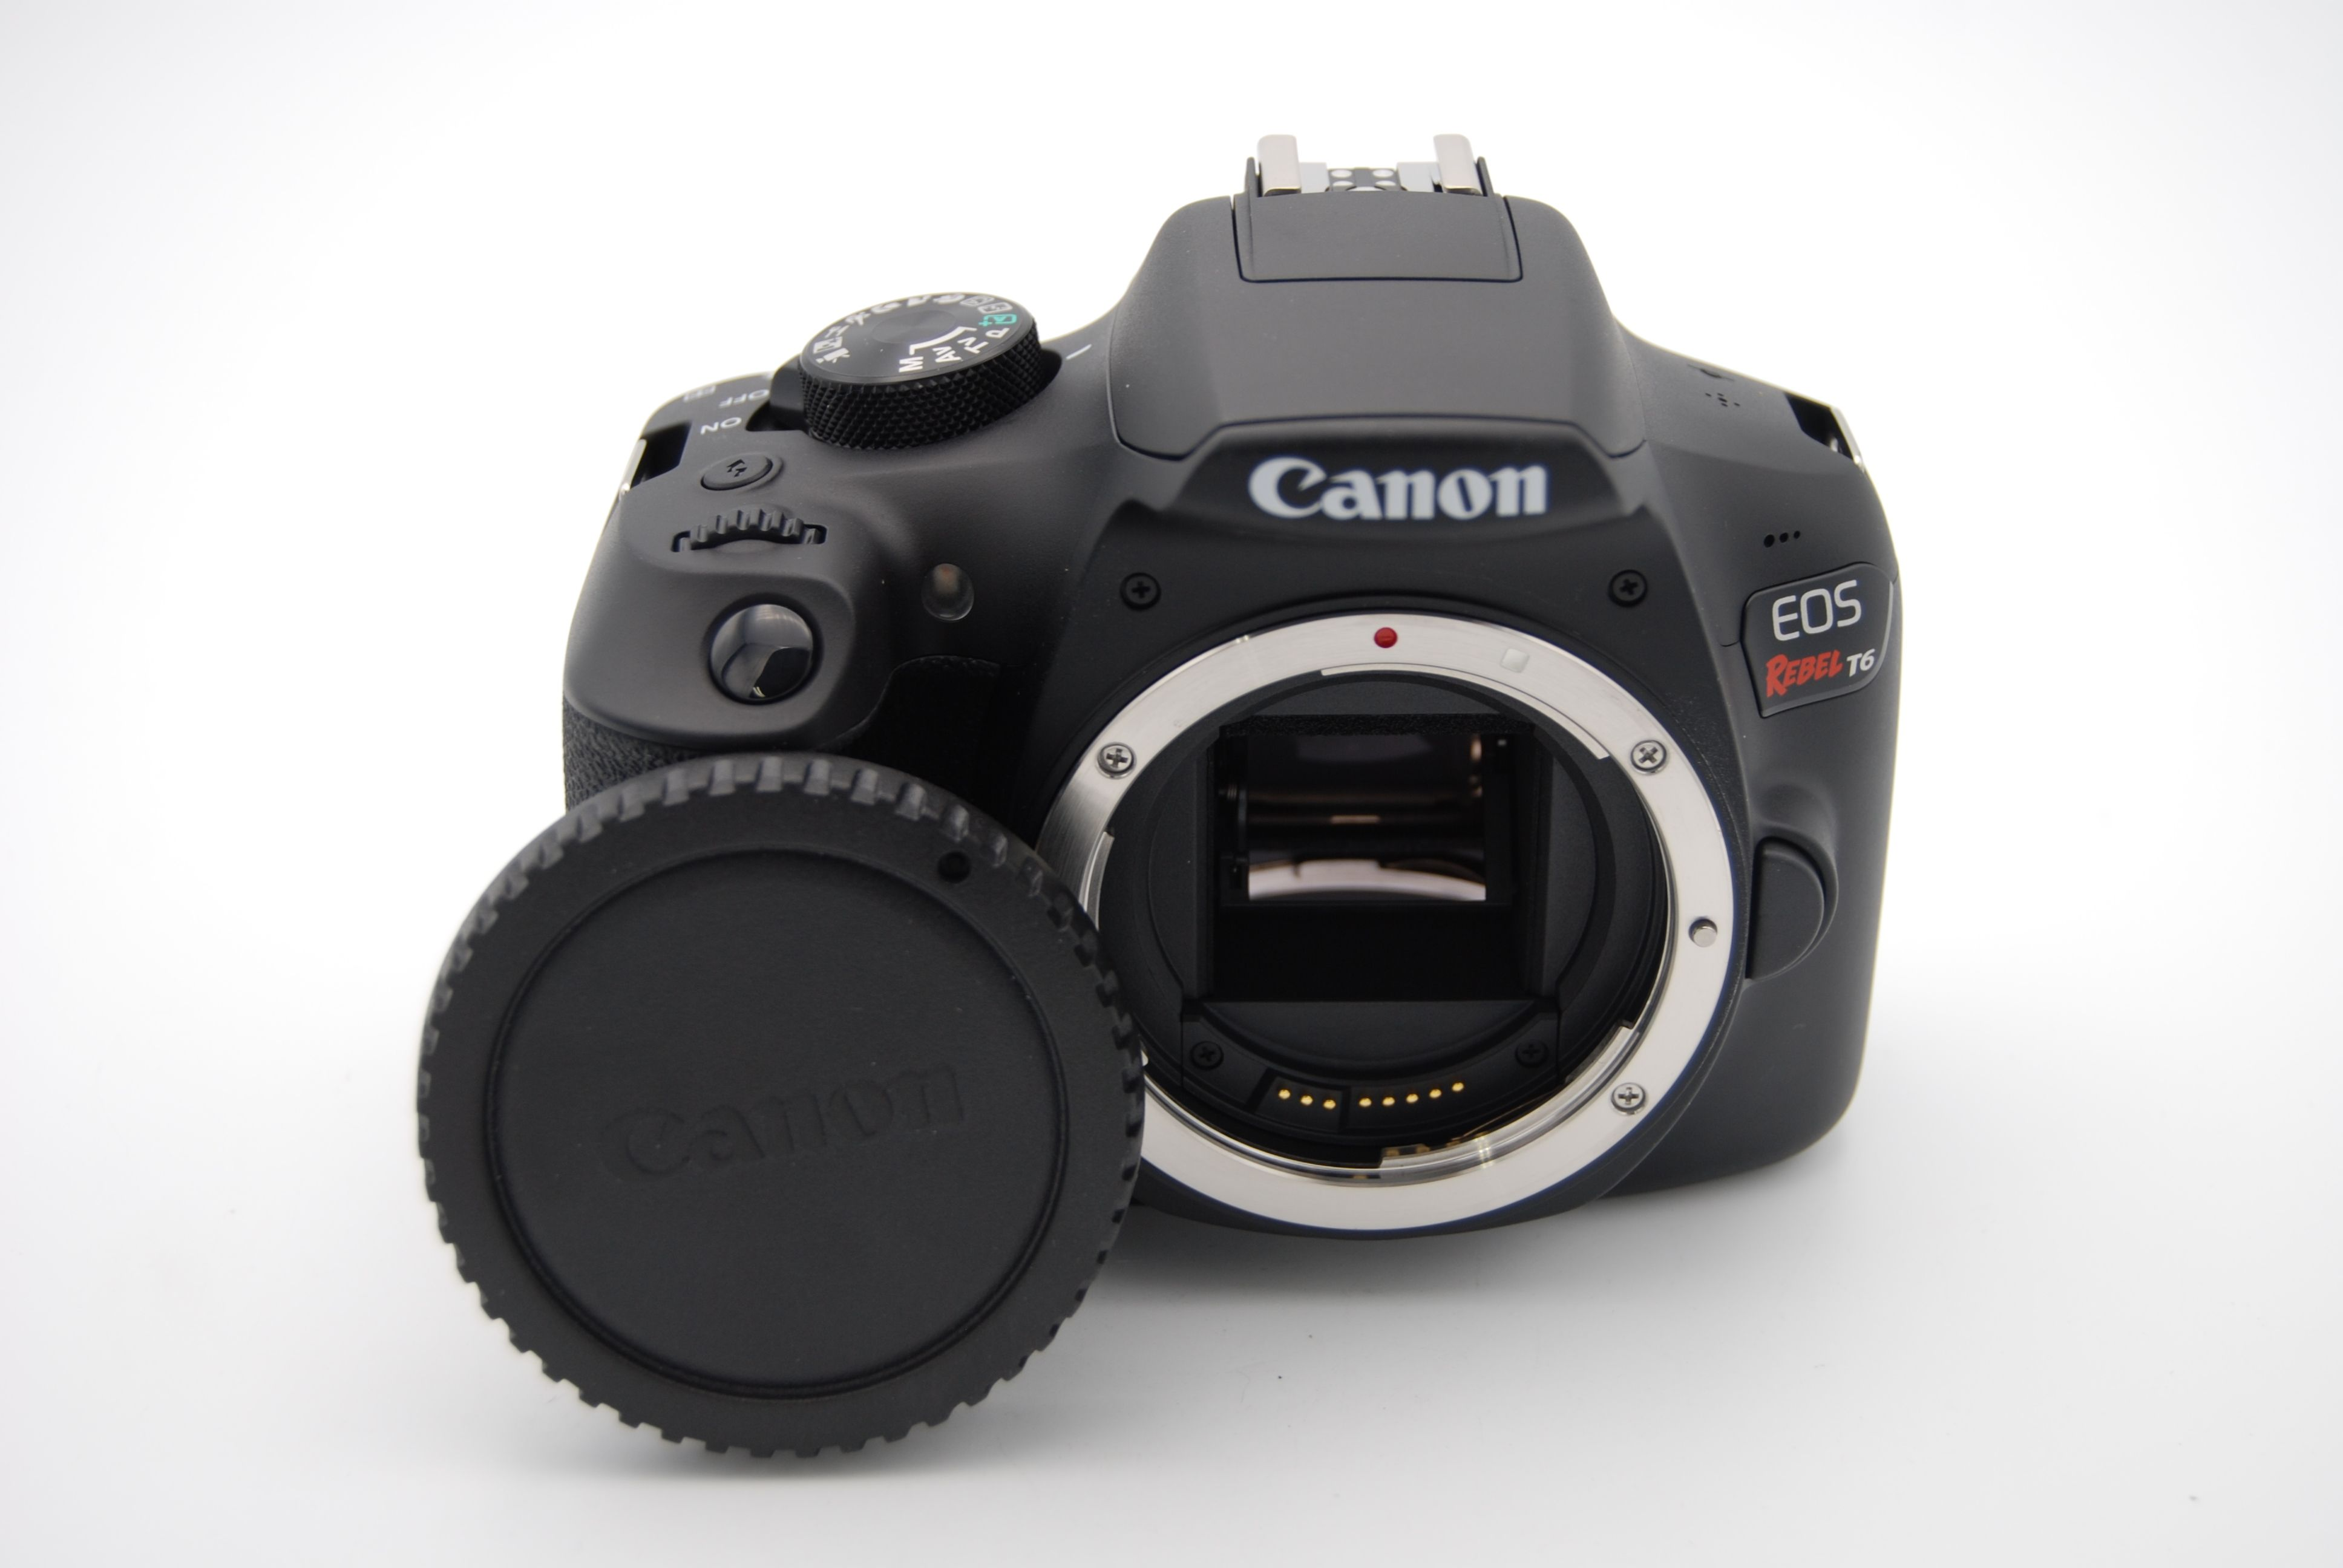 Details About Canon Eos Rebel T6 Eos 1300d 18 0mp Digital Srl Camera Body